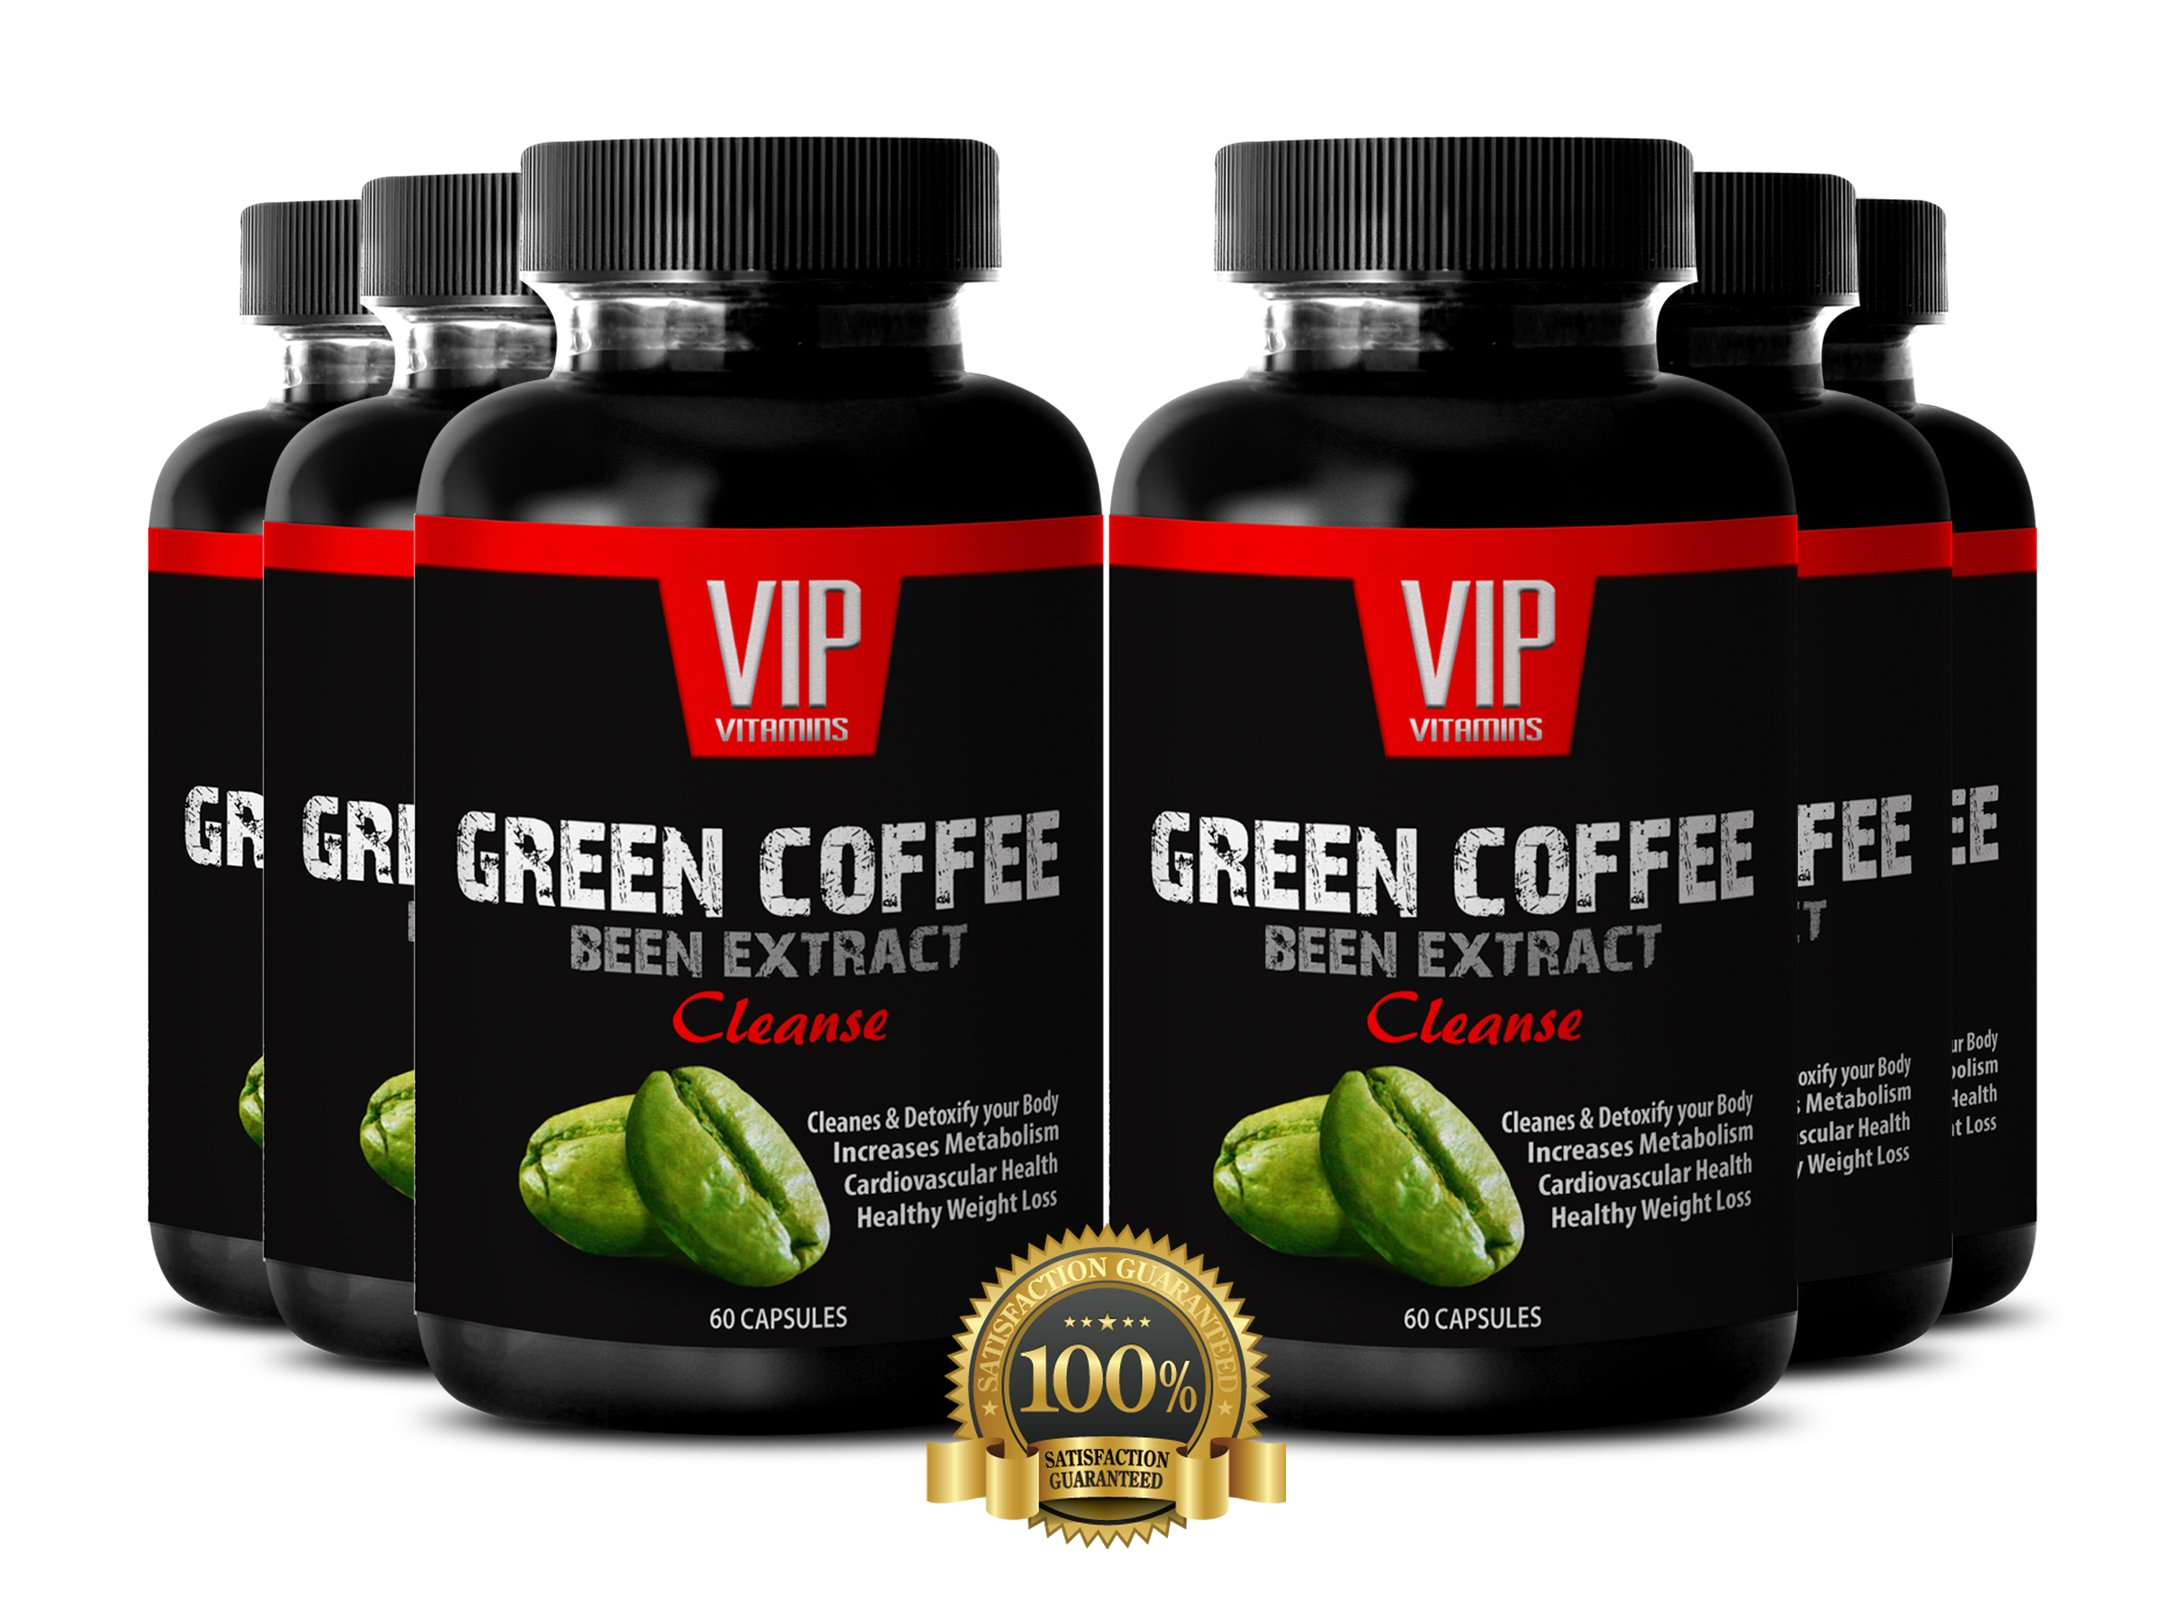 Green Coffee Beans Extract for Loosing Weight - Natural Green Coffee Beans Extract for Weight Loss (6 Bottles 360 Capsules)